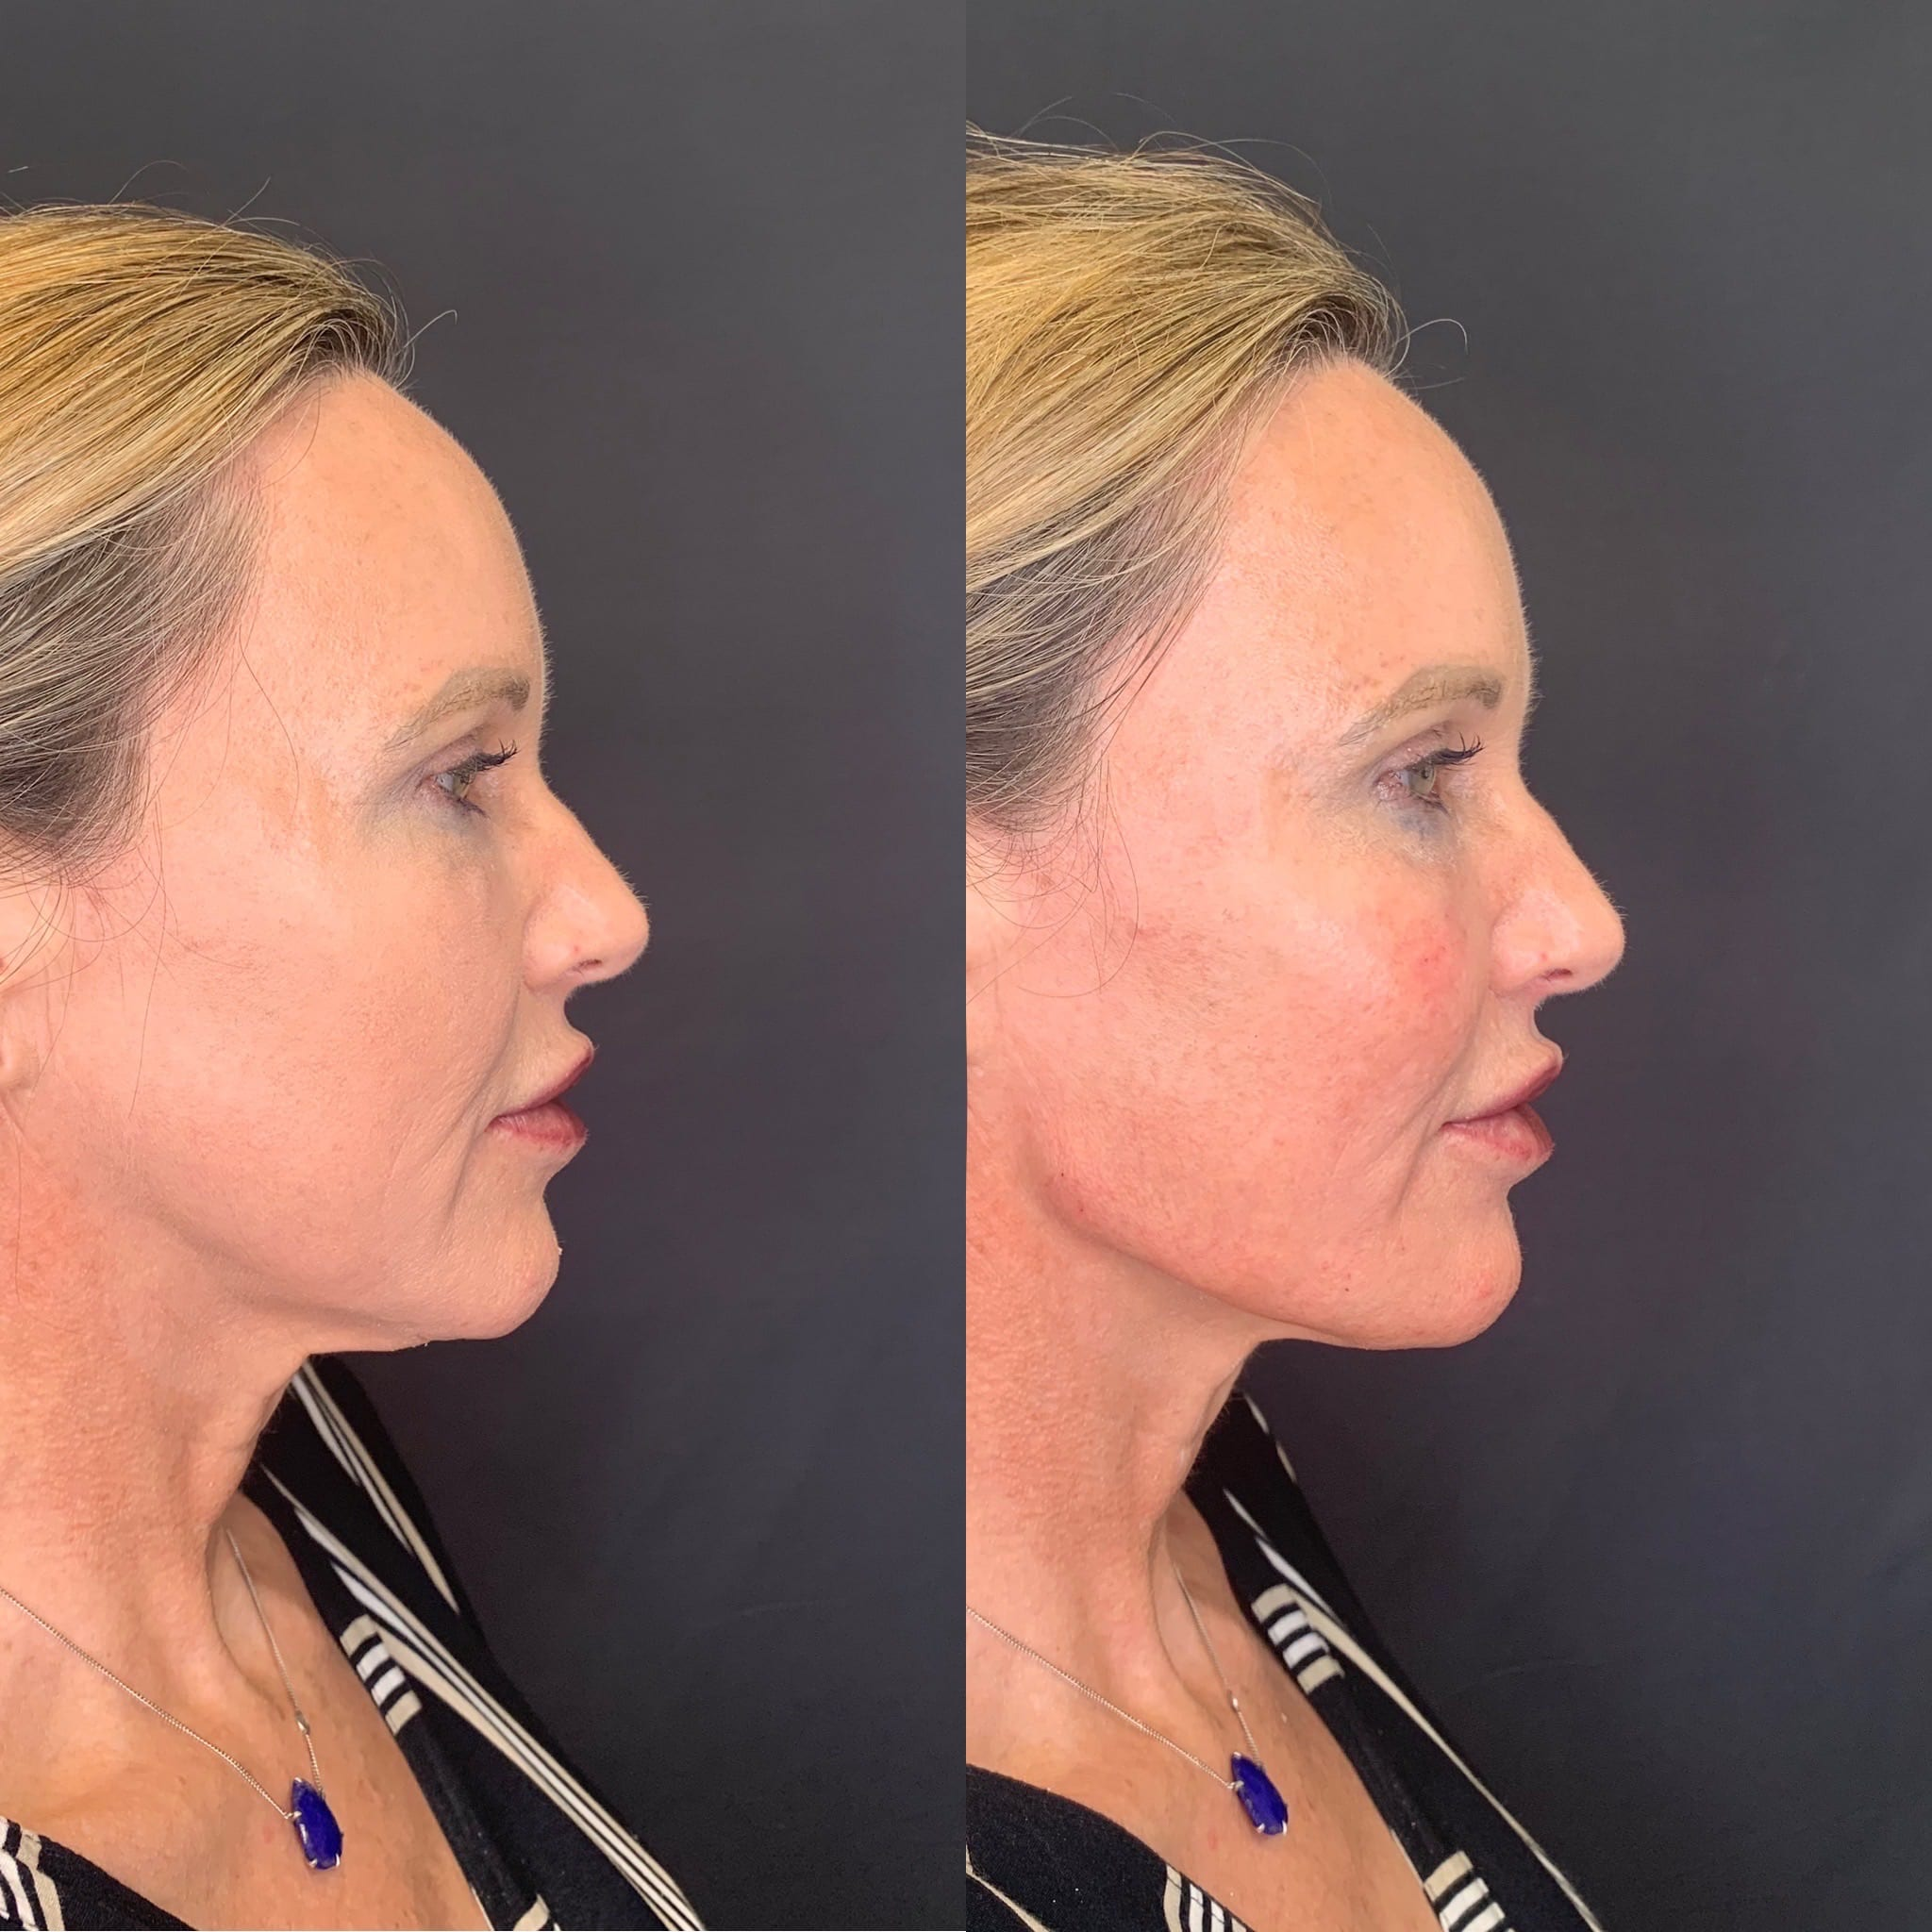 56 y/o Caucasian F immediately after injecting 3 syringes of voluma along her jawline for better contour & definition.